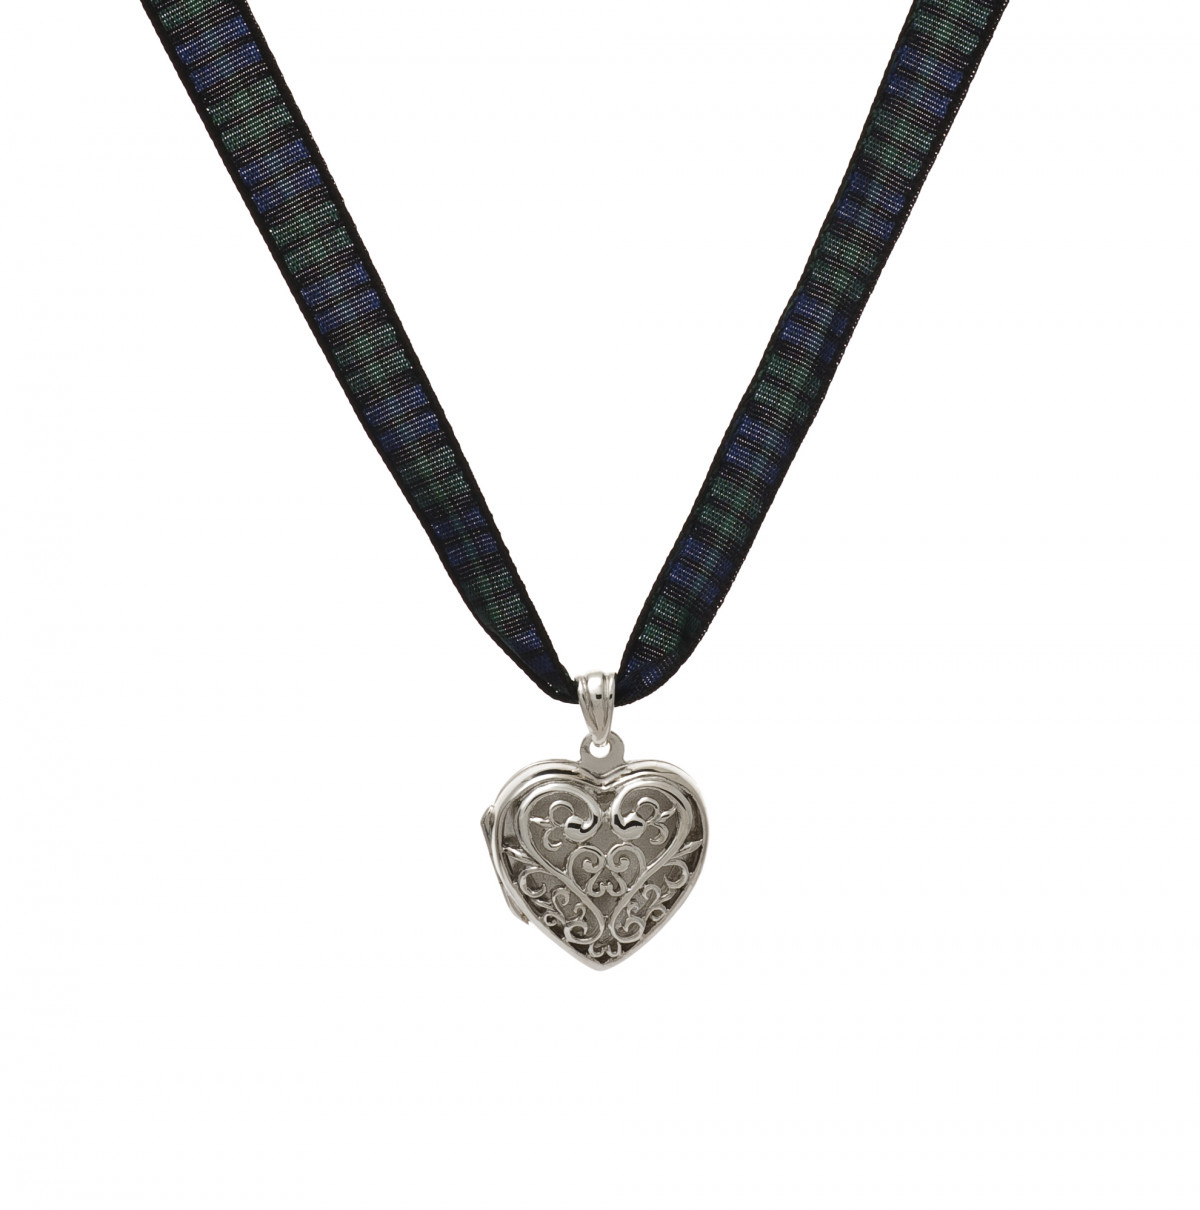 Filigree Heart Tartan Ribbon Necklace | Clanscotweb Inside Most Current Ribbon Open Heart Necklaces (View 12 of 25)